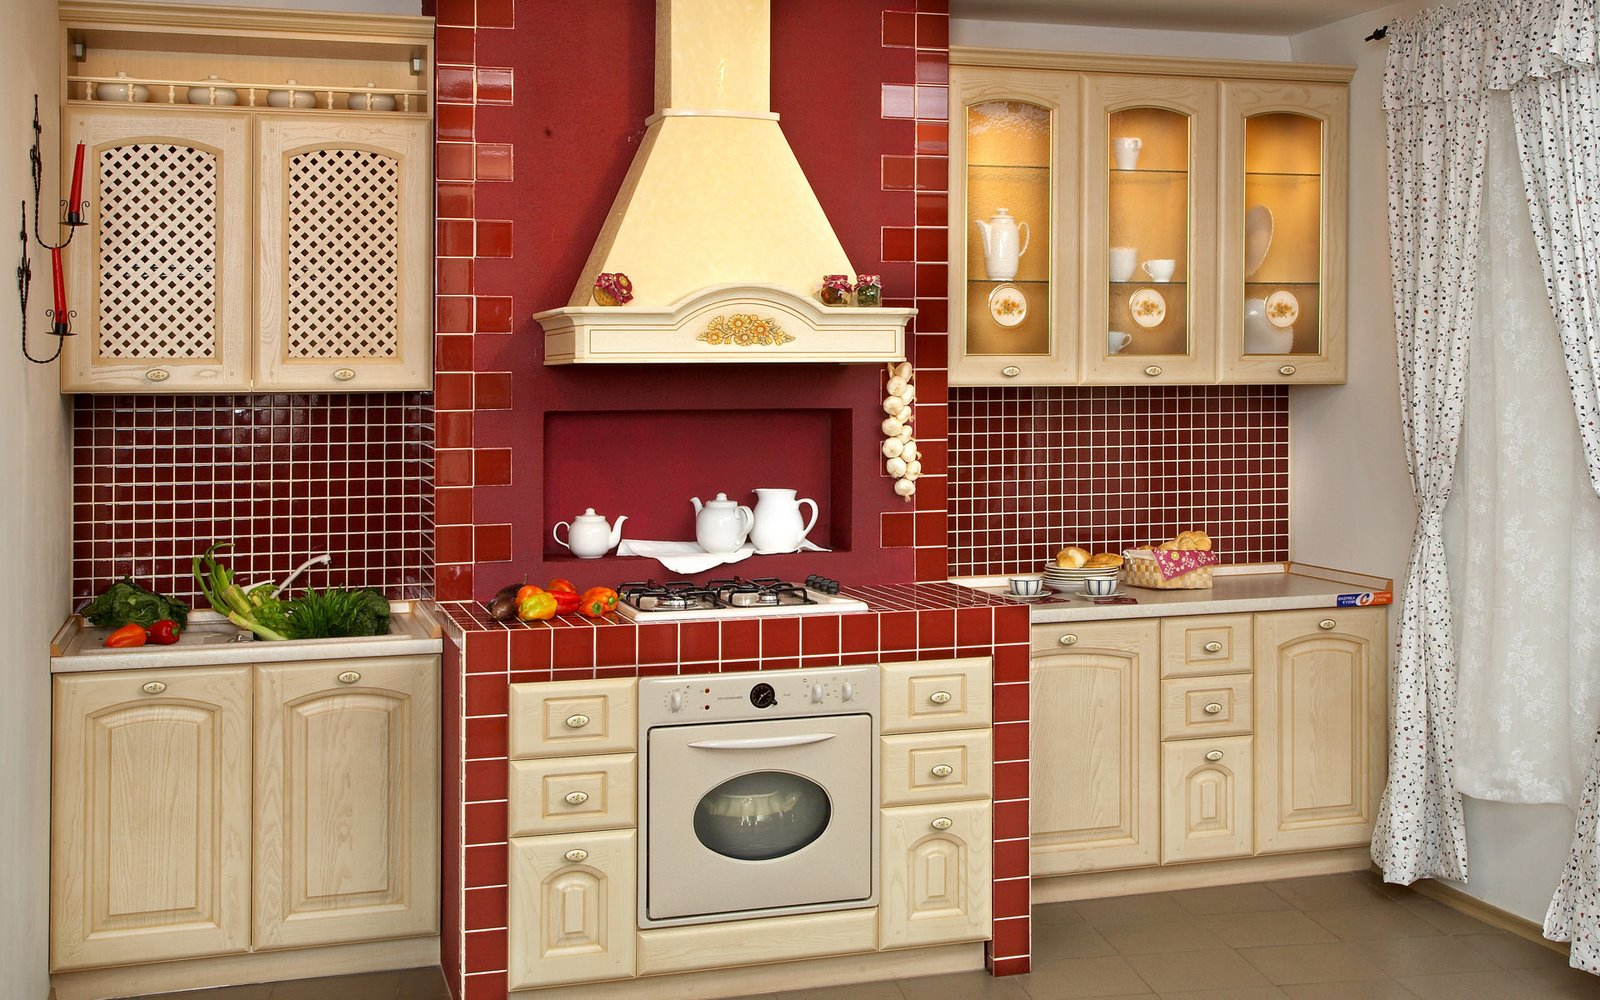 Modern kitchen designs in red interior decorating home for Old country style kitchen